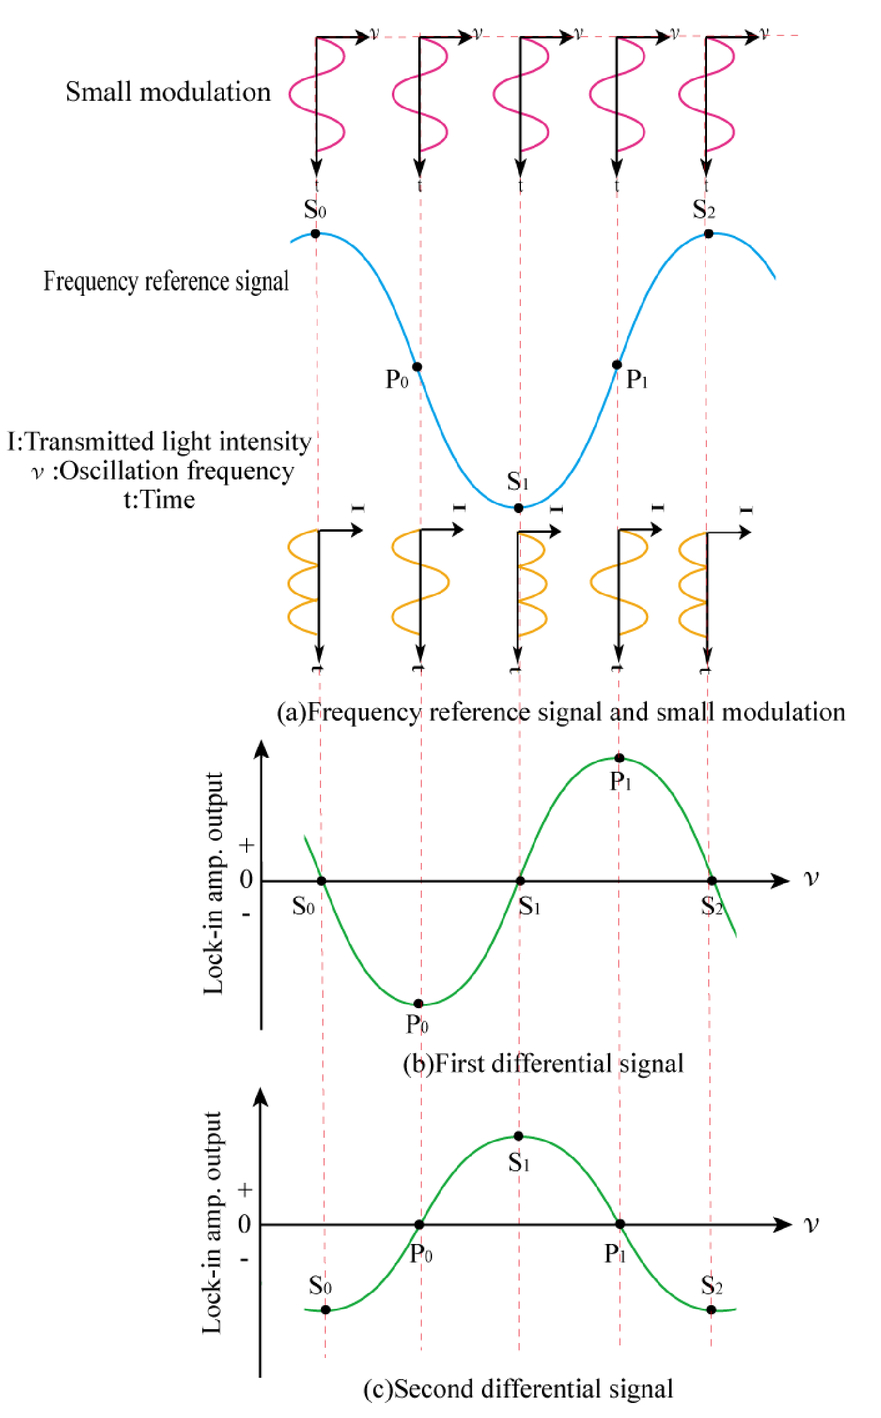 Physical Random Number Generator Using An Oscillation Frequency Simulation Of A Lockin Amplifier 00169 Psisdg10526 105260e Page 3 1